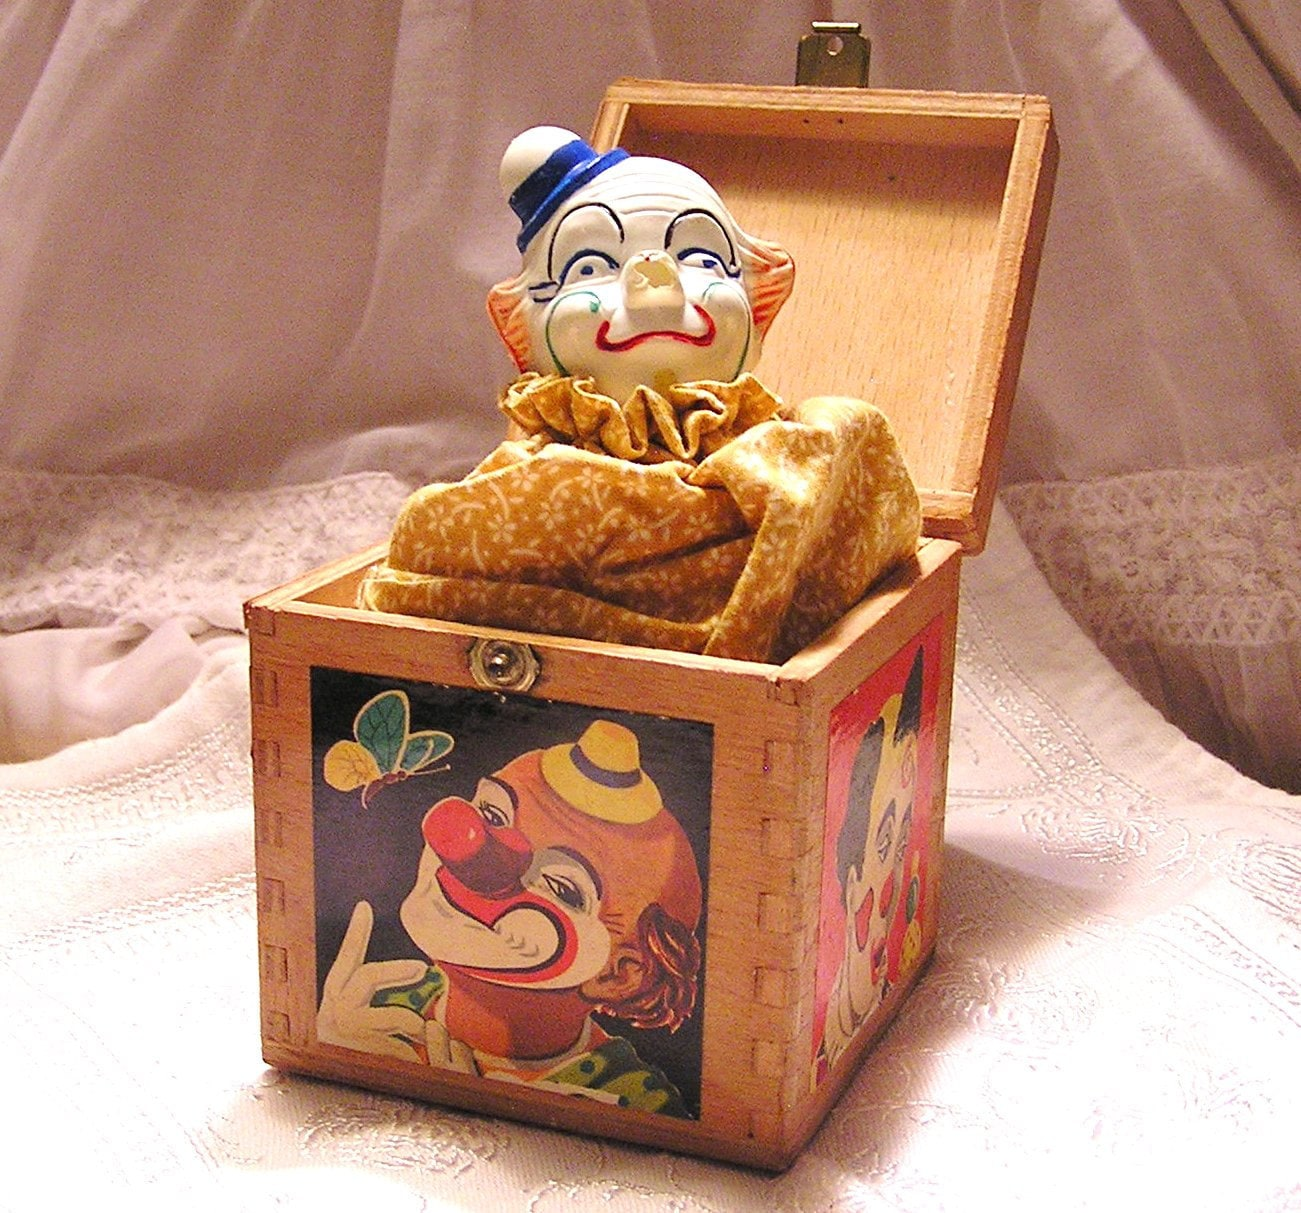 Vintage Clown in Wooden Dovetailed Box. Jack in the Box